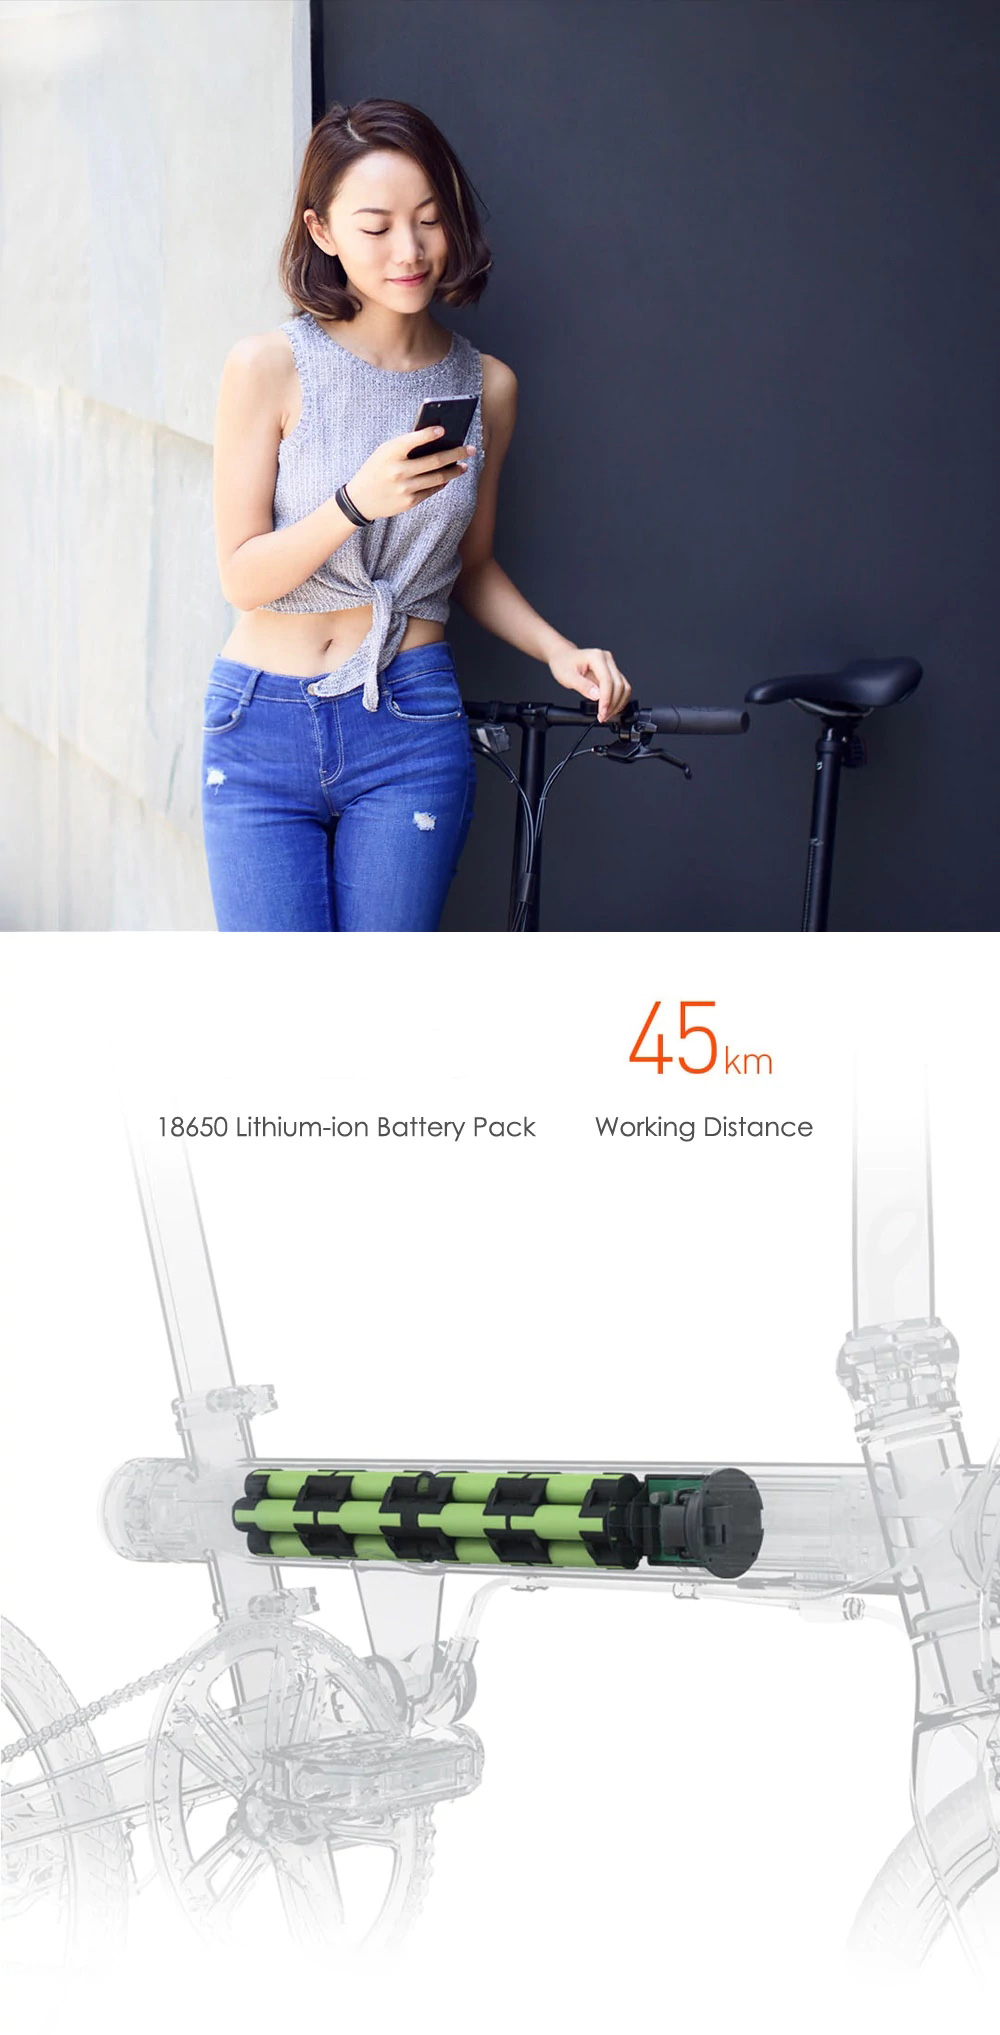 HTB1NExnlkZmBKNjSZPiq6xFNVXaa - 16inch Origina XIAOMI electrical bike Qicycle EF1 Mini electrical Ebike good folding  bike lithium battery mijia  CITY EBIKE